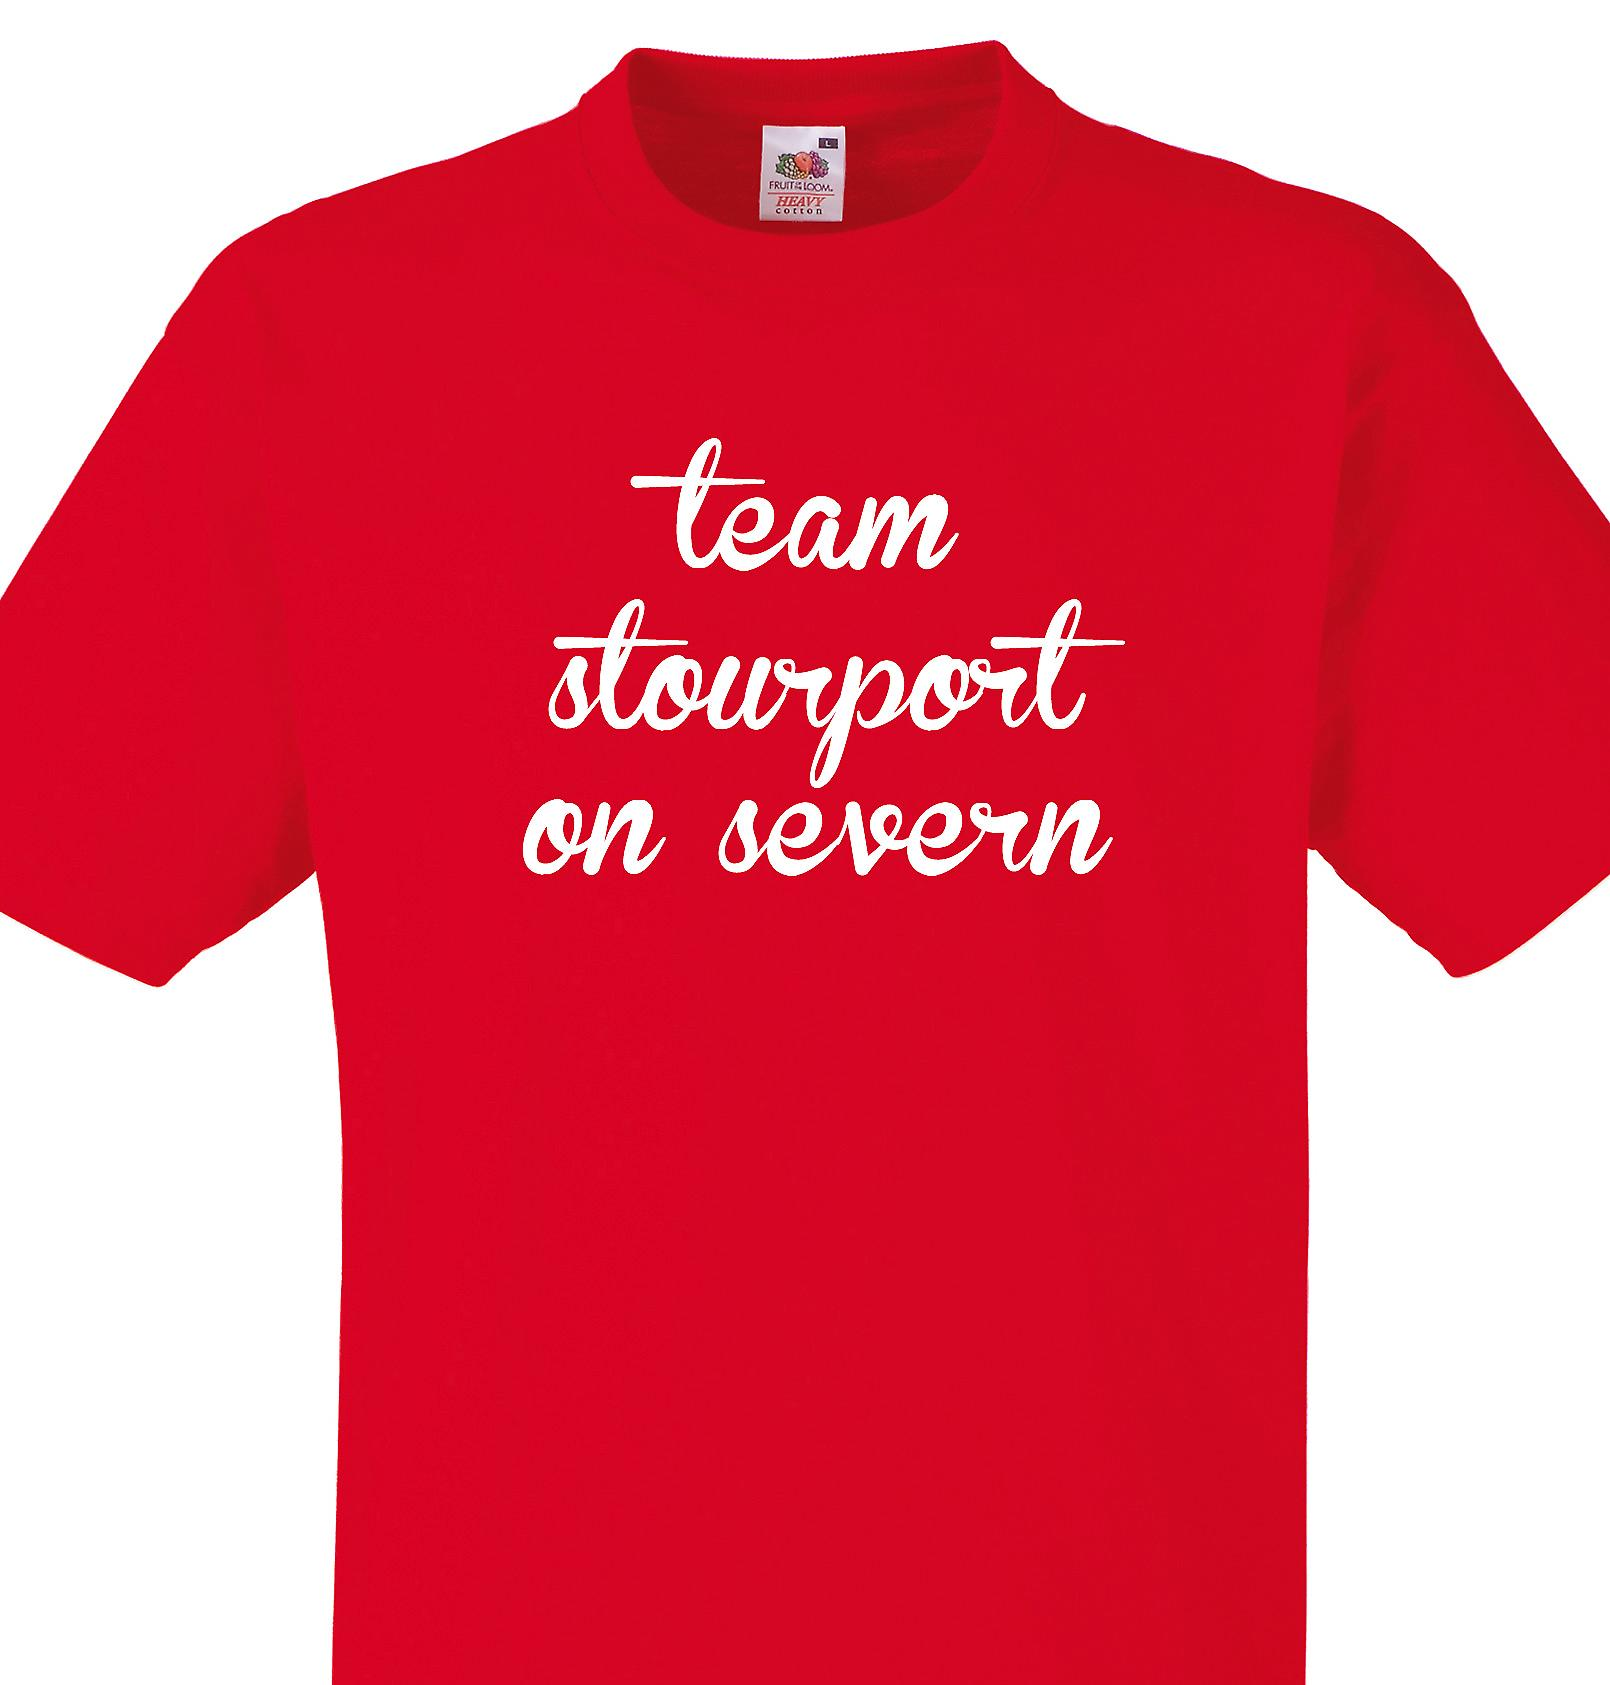 Team Stourport on severn Red T shirt